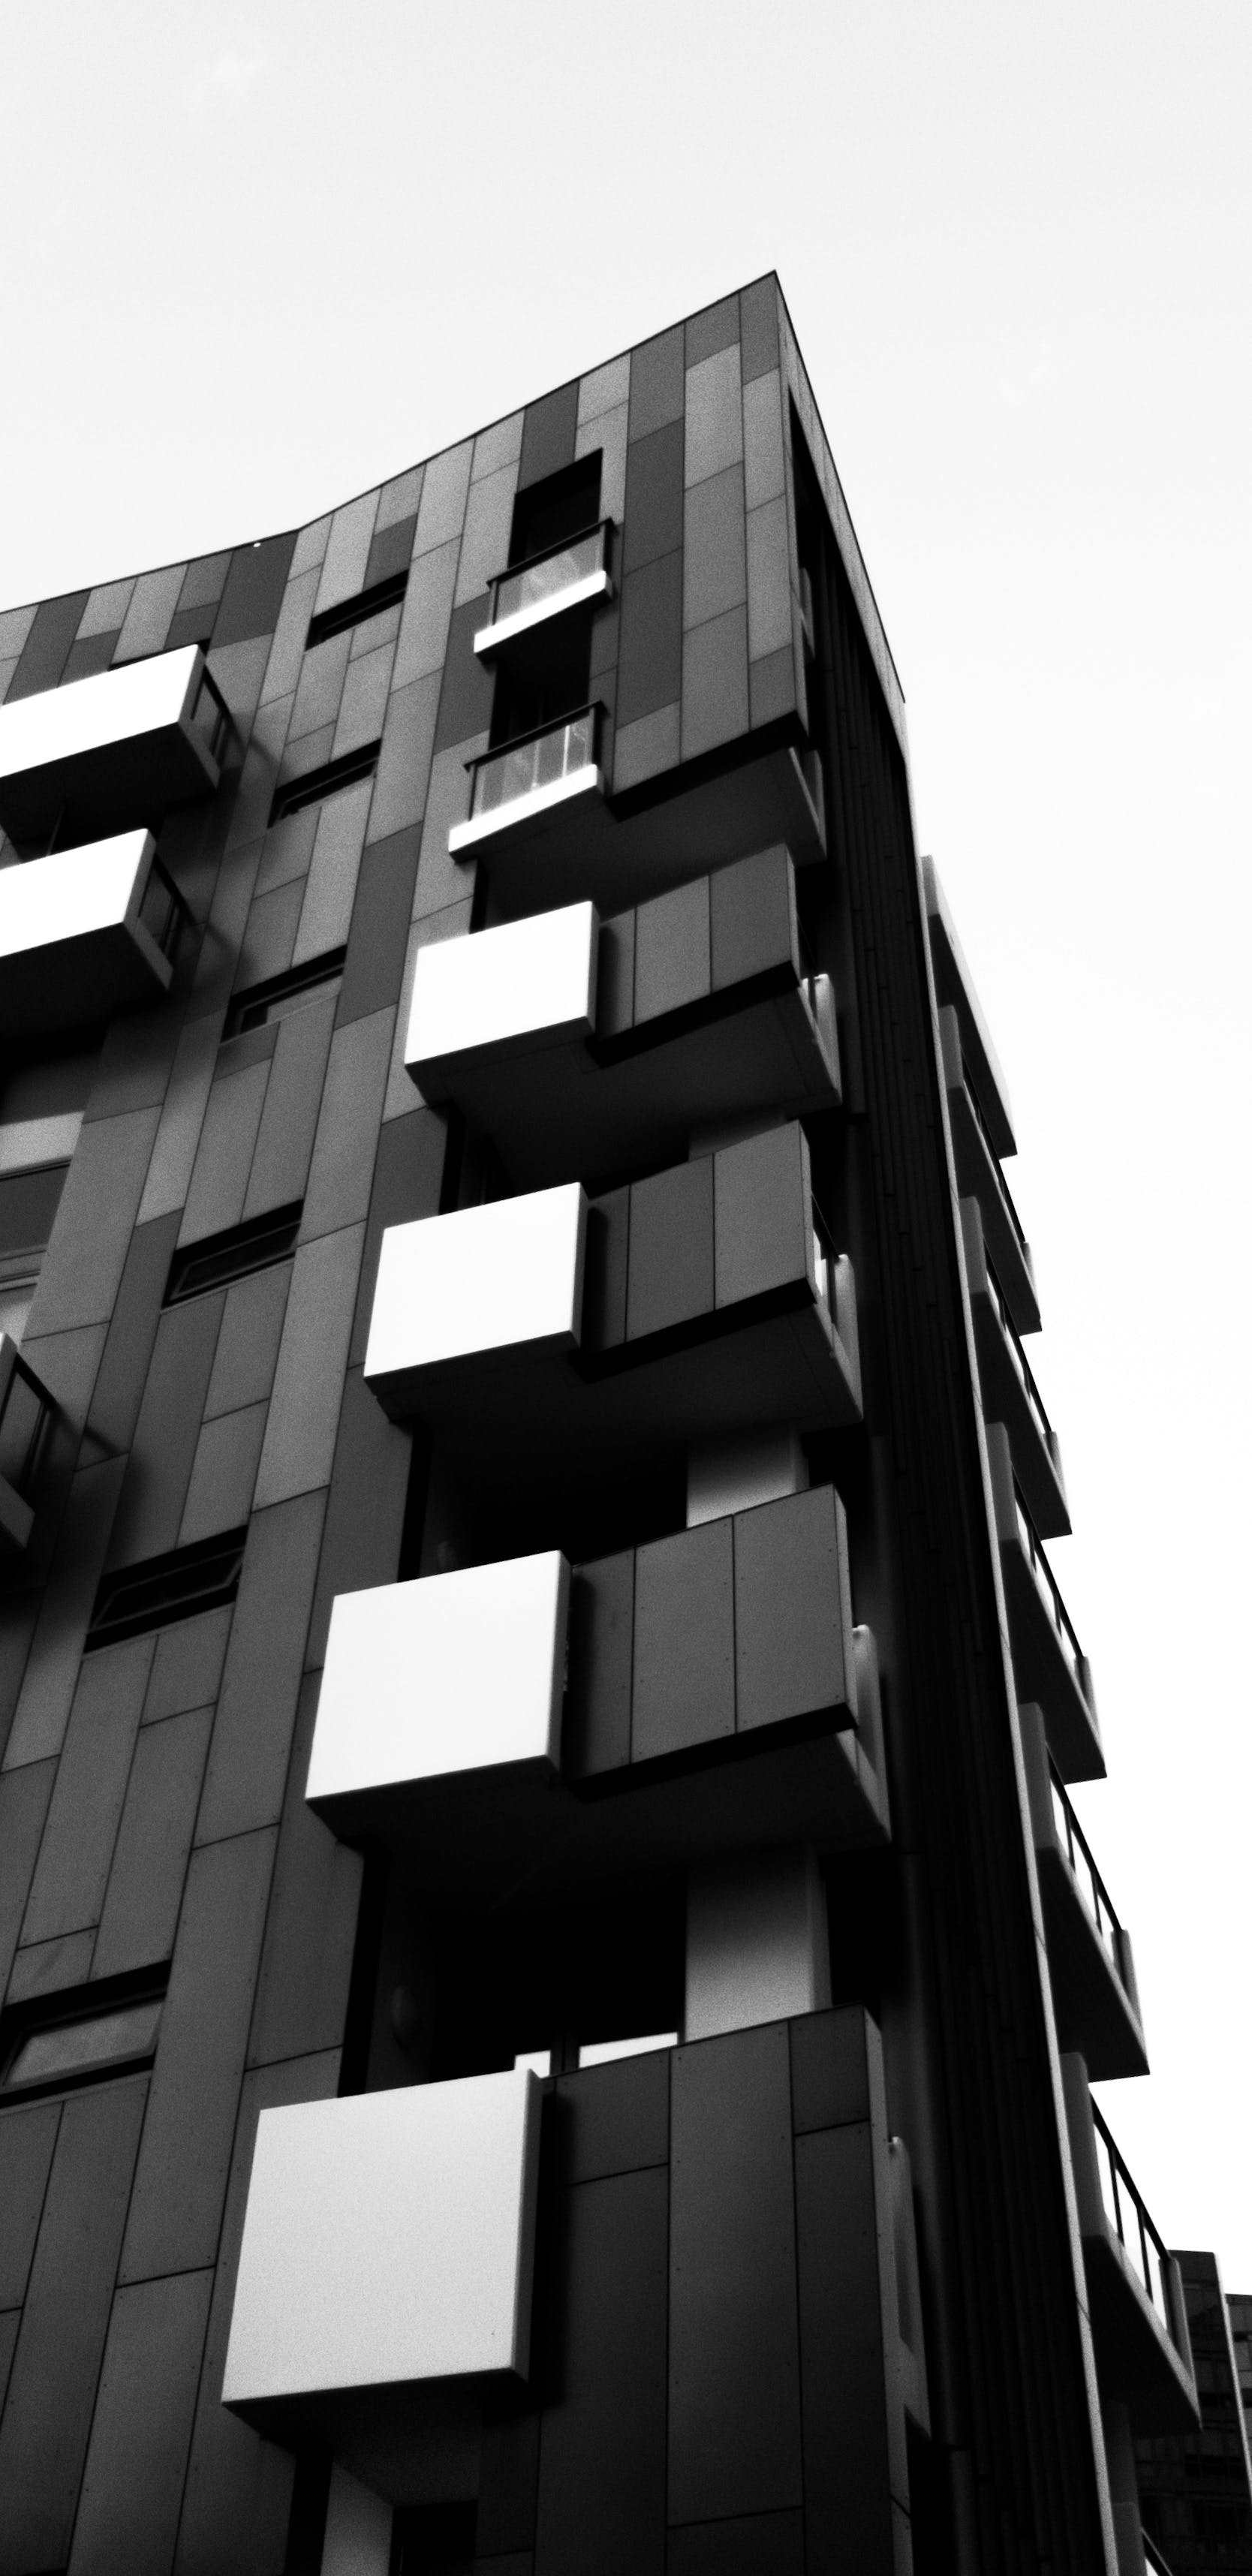 Free stock photo of architecture, black and white, minimal